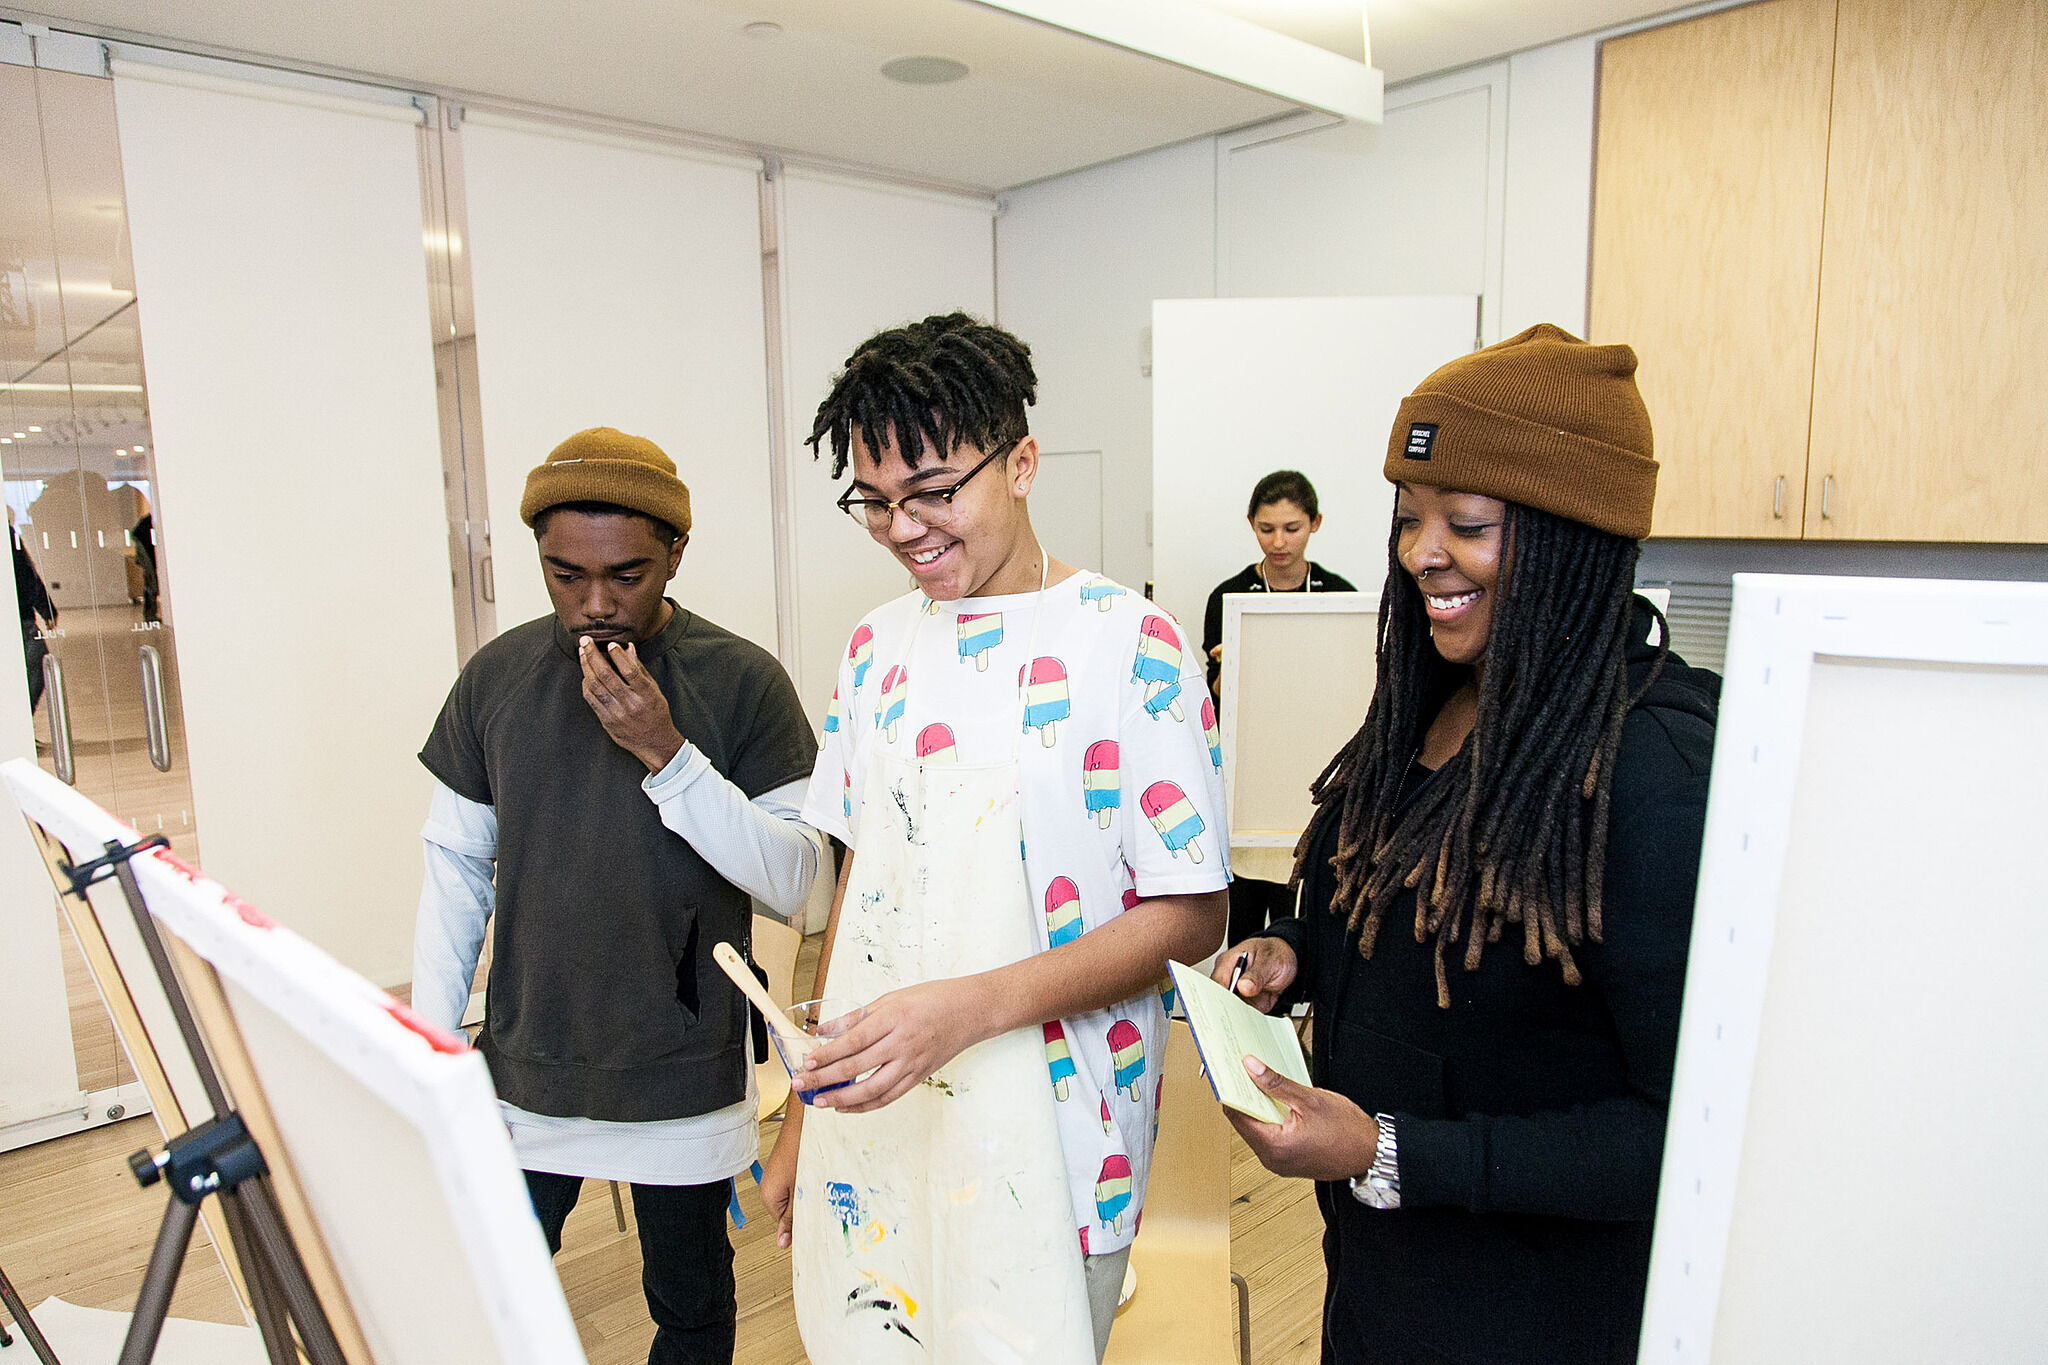 Artist and students stand in front of an easel.